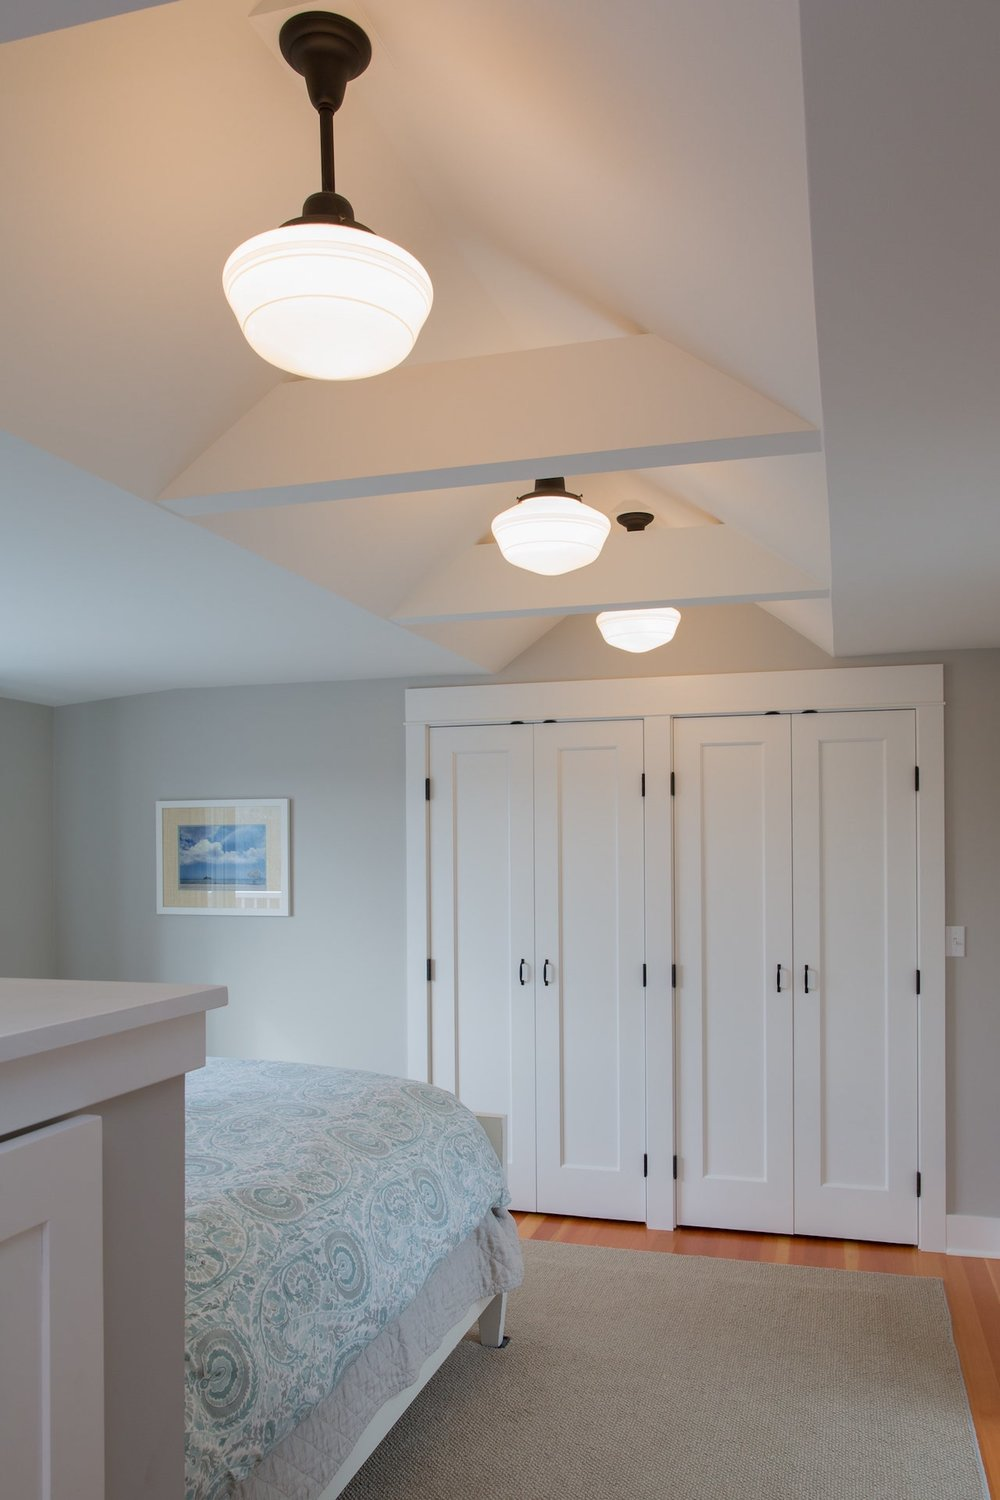 Ballard Master Suite Addition 13.jpg